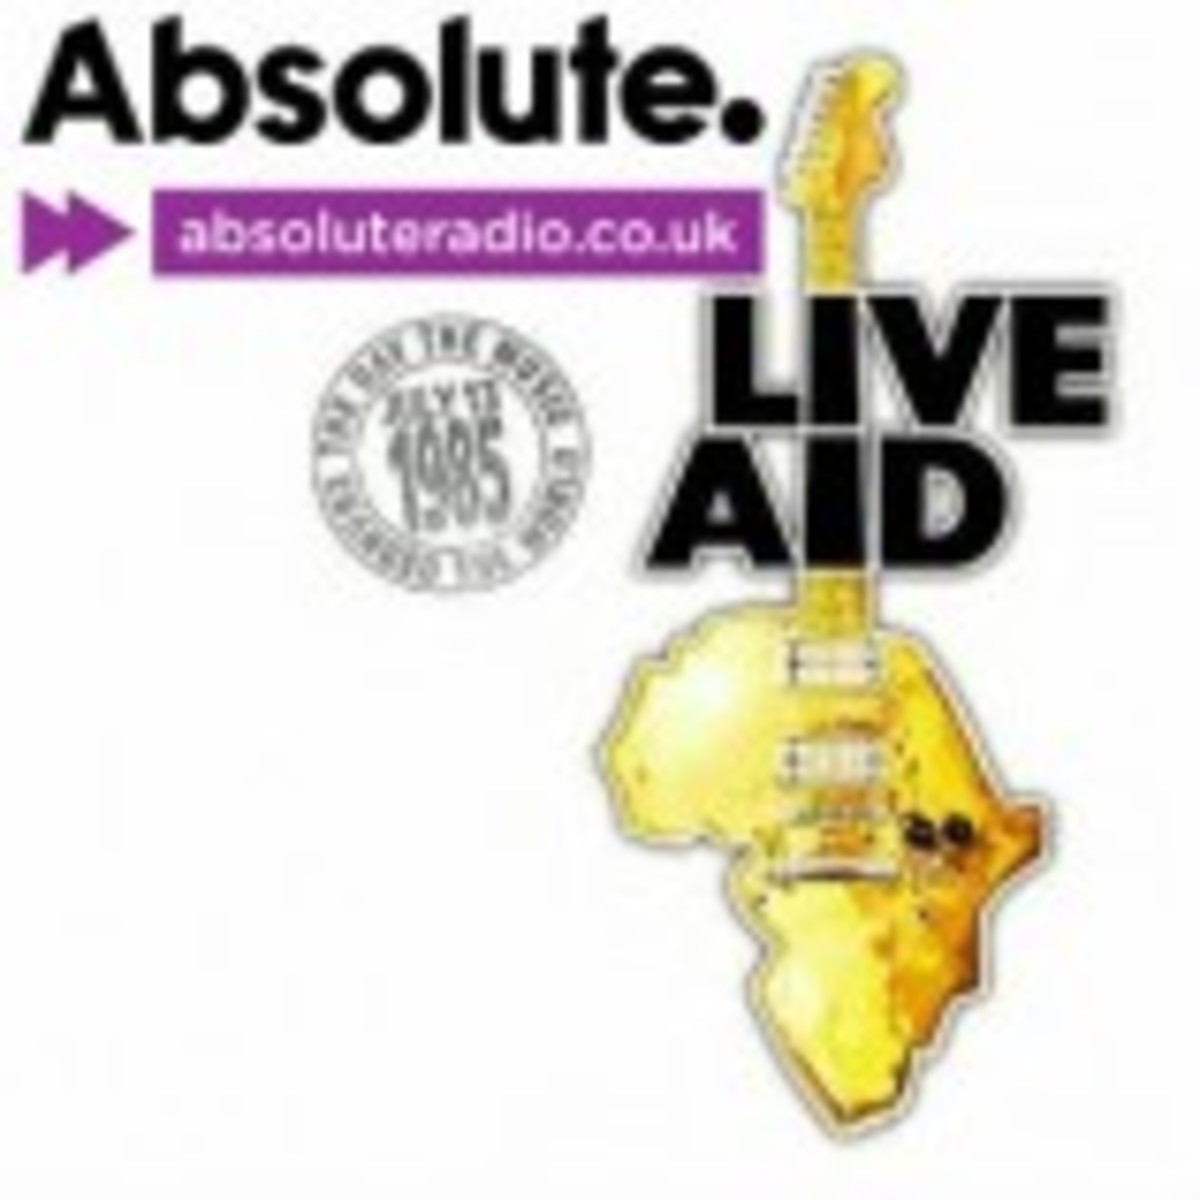 The Absolute Radio Web site is currently featuring several very interesting podcasts about Live Aid's 25th anniversary.